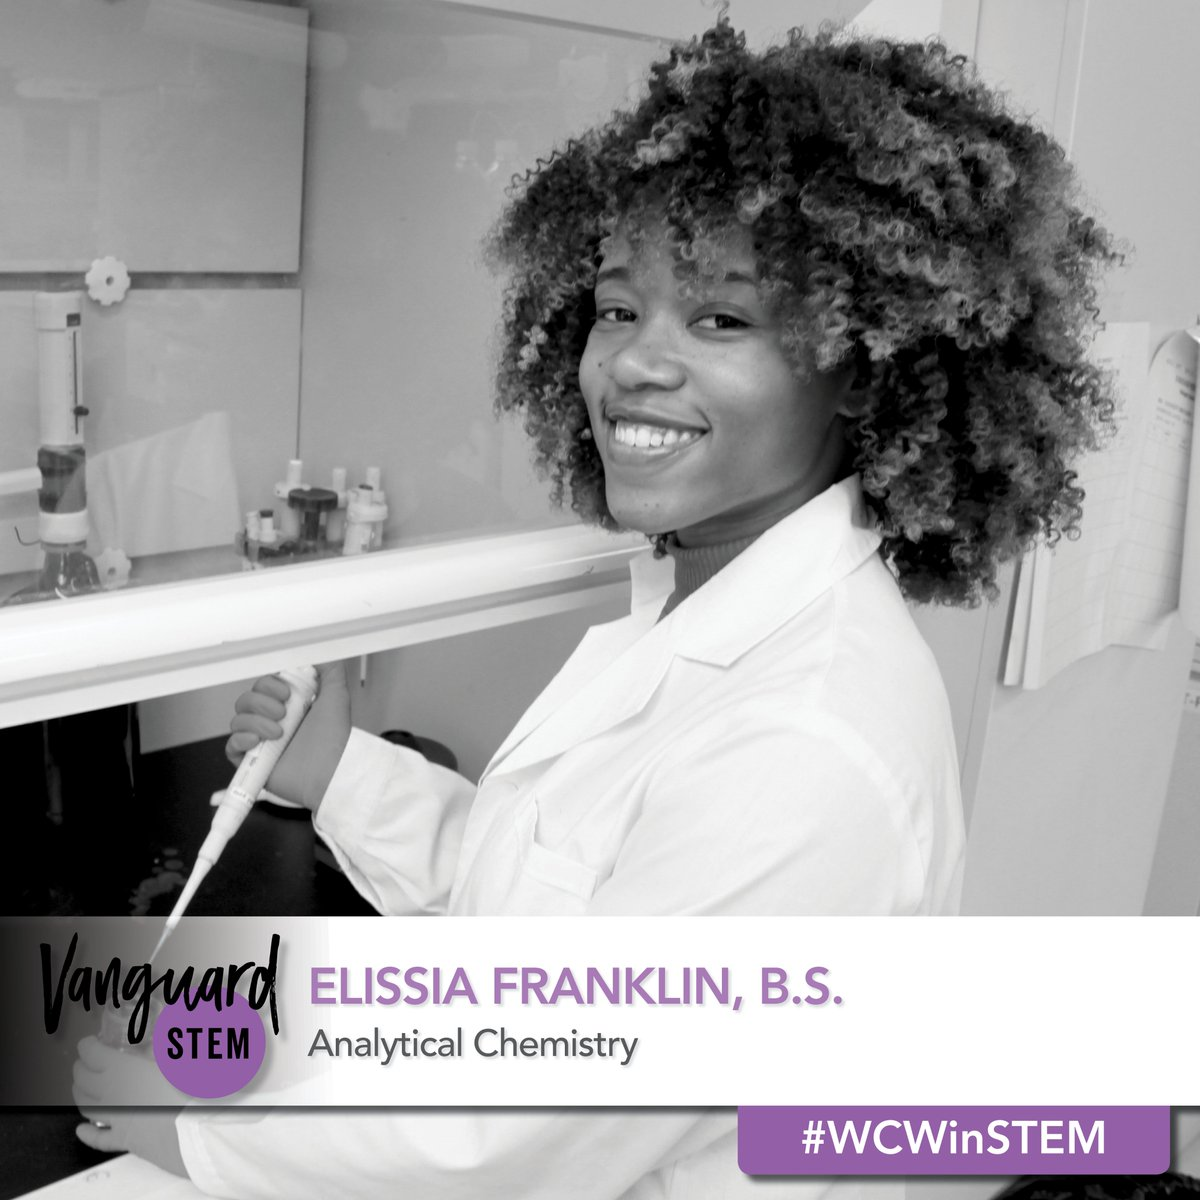 Our #WCWinSTEM, Elissia Franklin, is passionate about improving the understanding of health disparities faced by Black women which inspired her to start #TheResearchHer podcast, a podcast that helps breakdown and digest research relevant to Black women. https://conversations.vanguardstem.com/wcwinstem-elissia-franklin-b-s-139340def2a0…